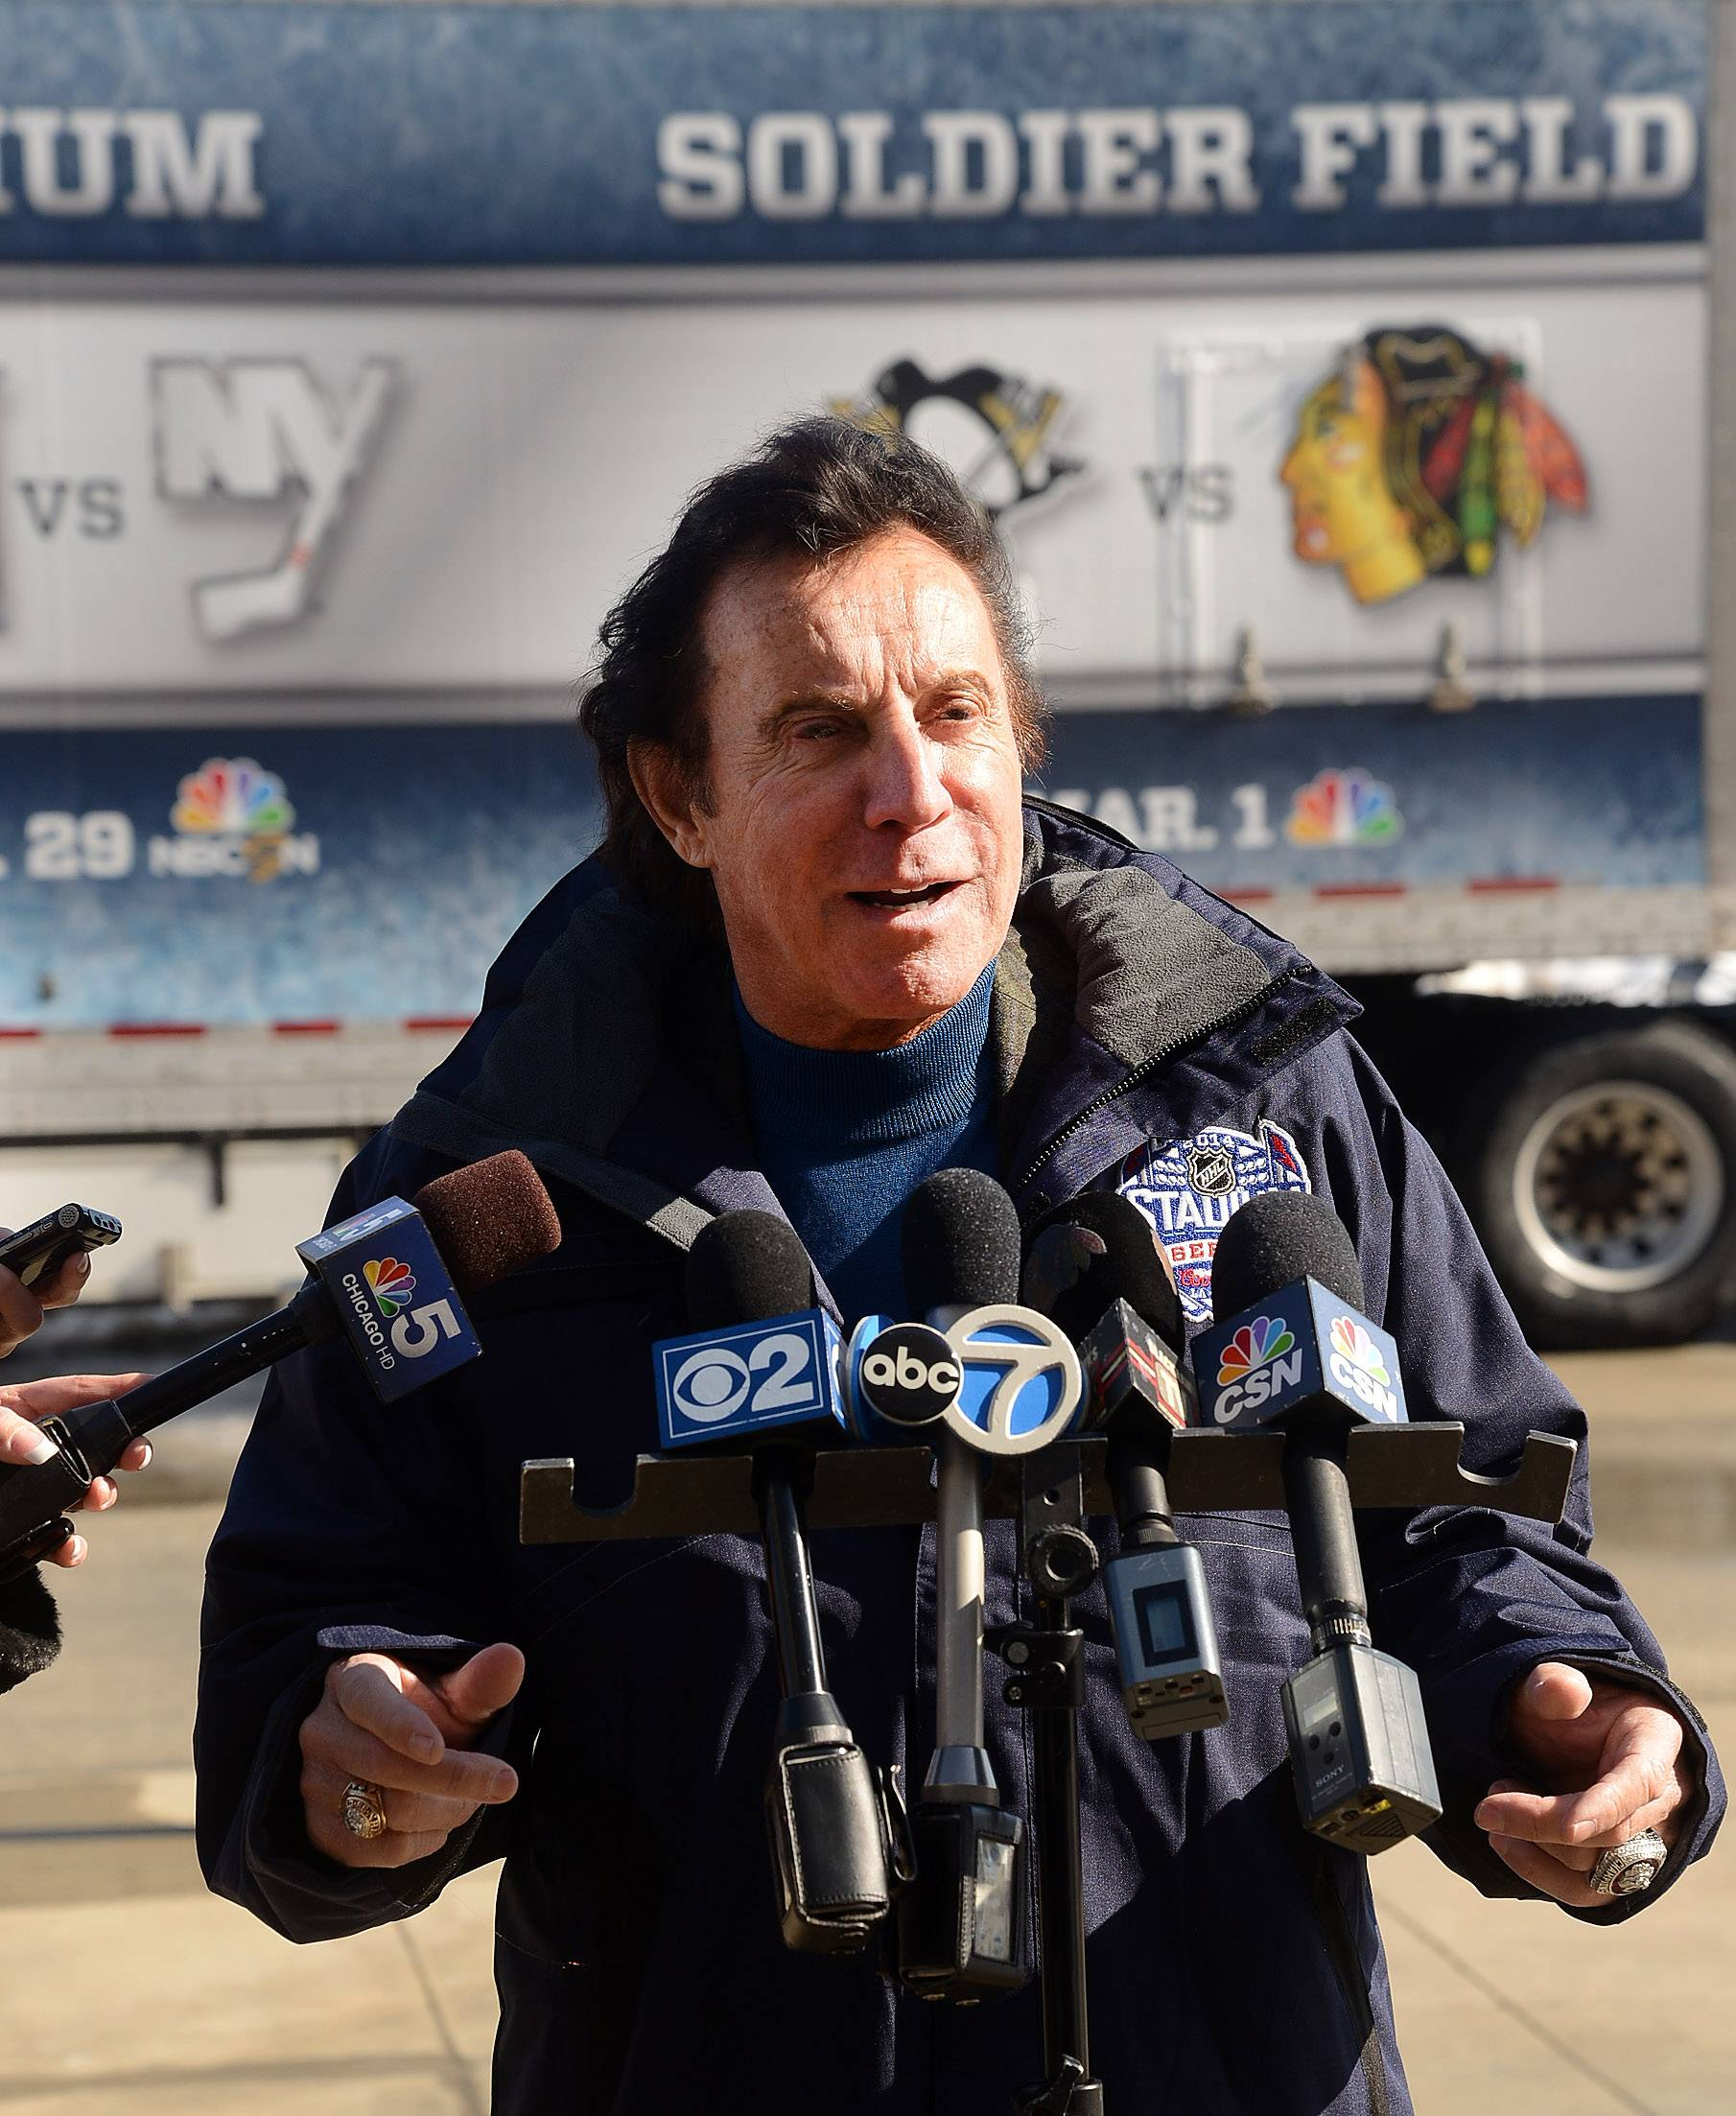 Blackhawks ambassador Tony Esposito talks with the media Tuesday about the excitement of the upcoming hockey game at Soldier Field.